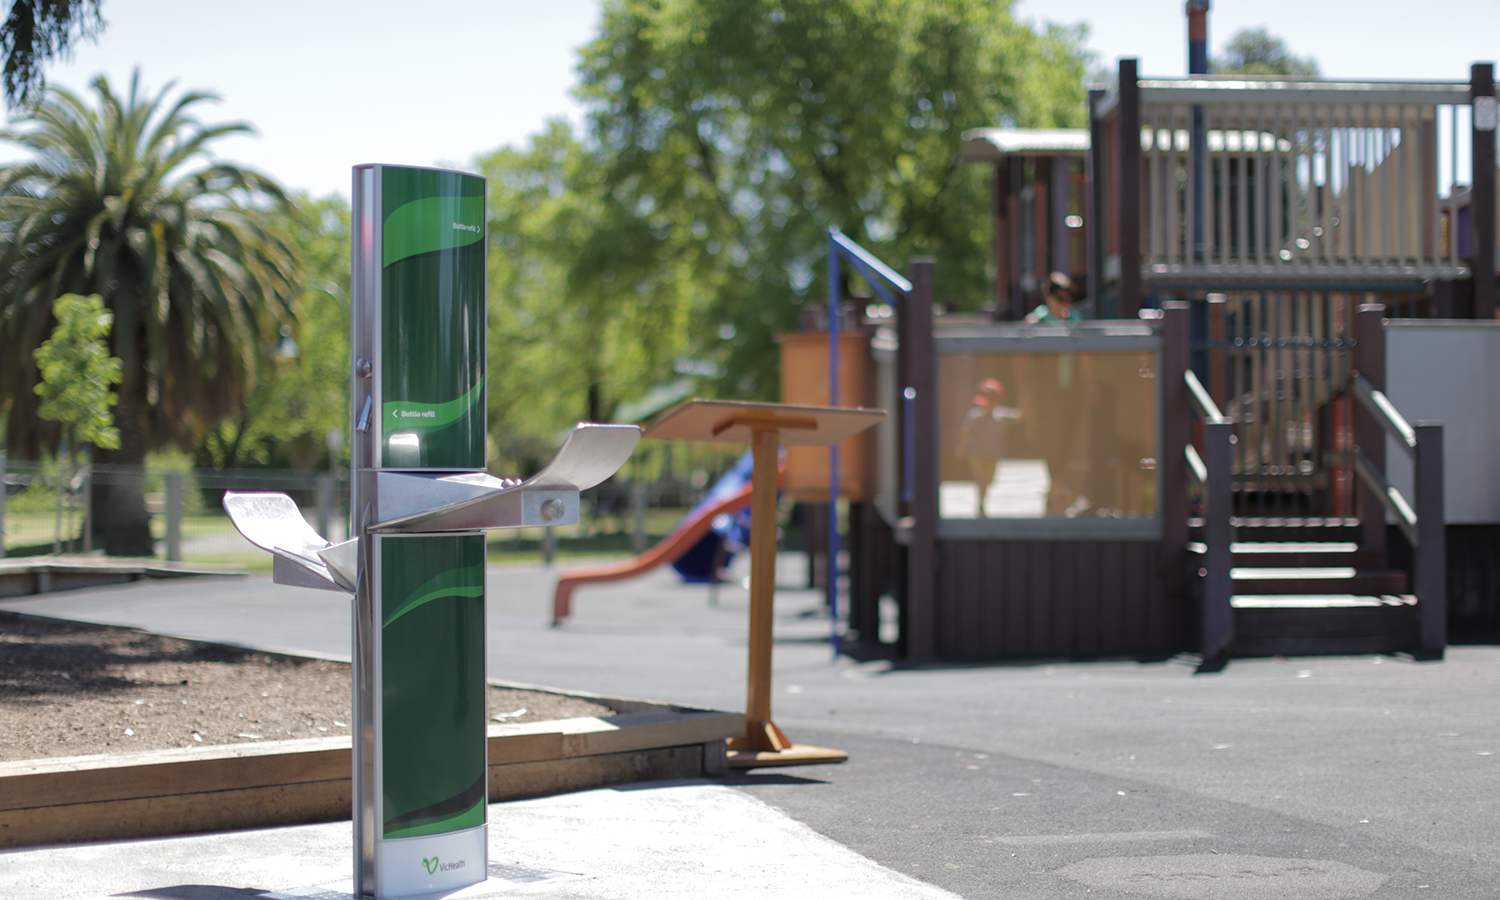 Aquafil FlexiFountain 1500BFF Dual-height Drinking Fountain & Bottle Refill Station installed in City of Greater Bendigo